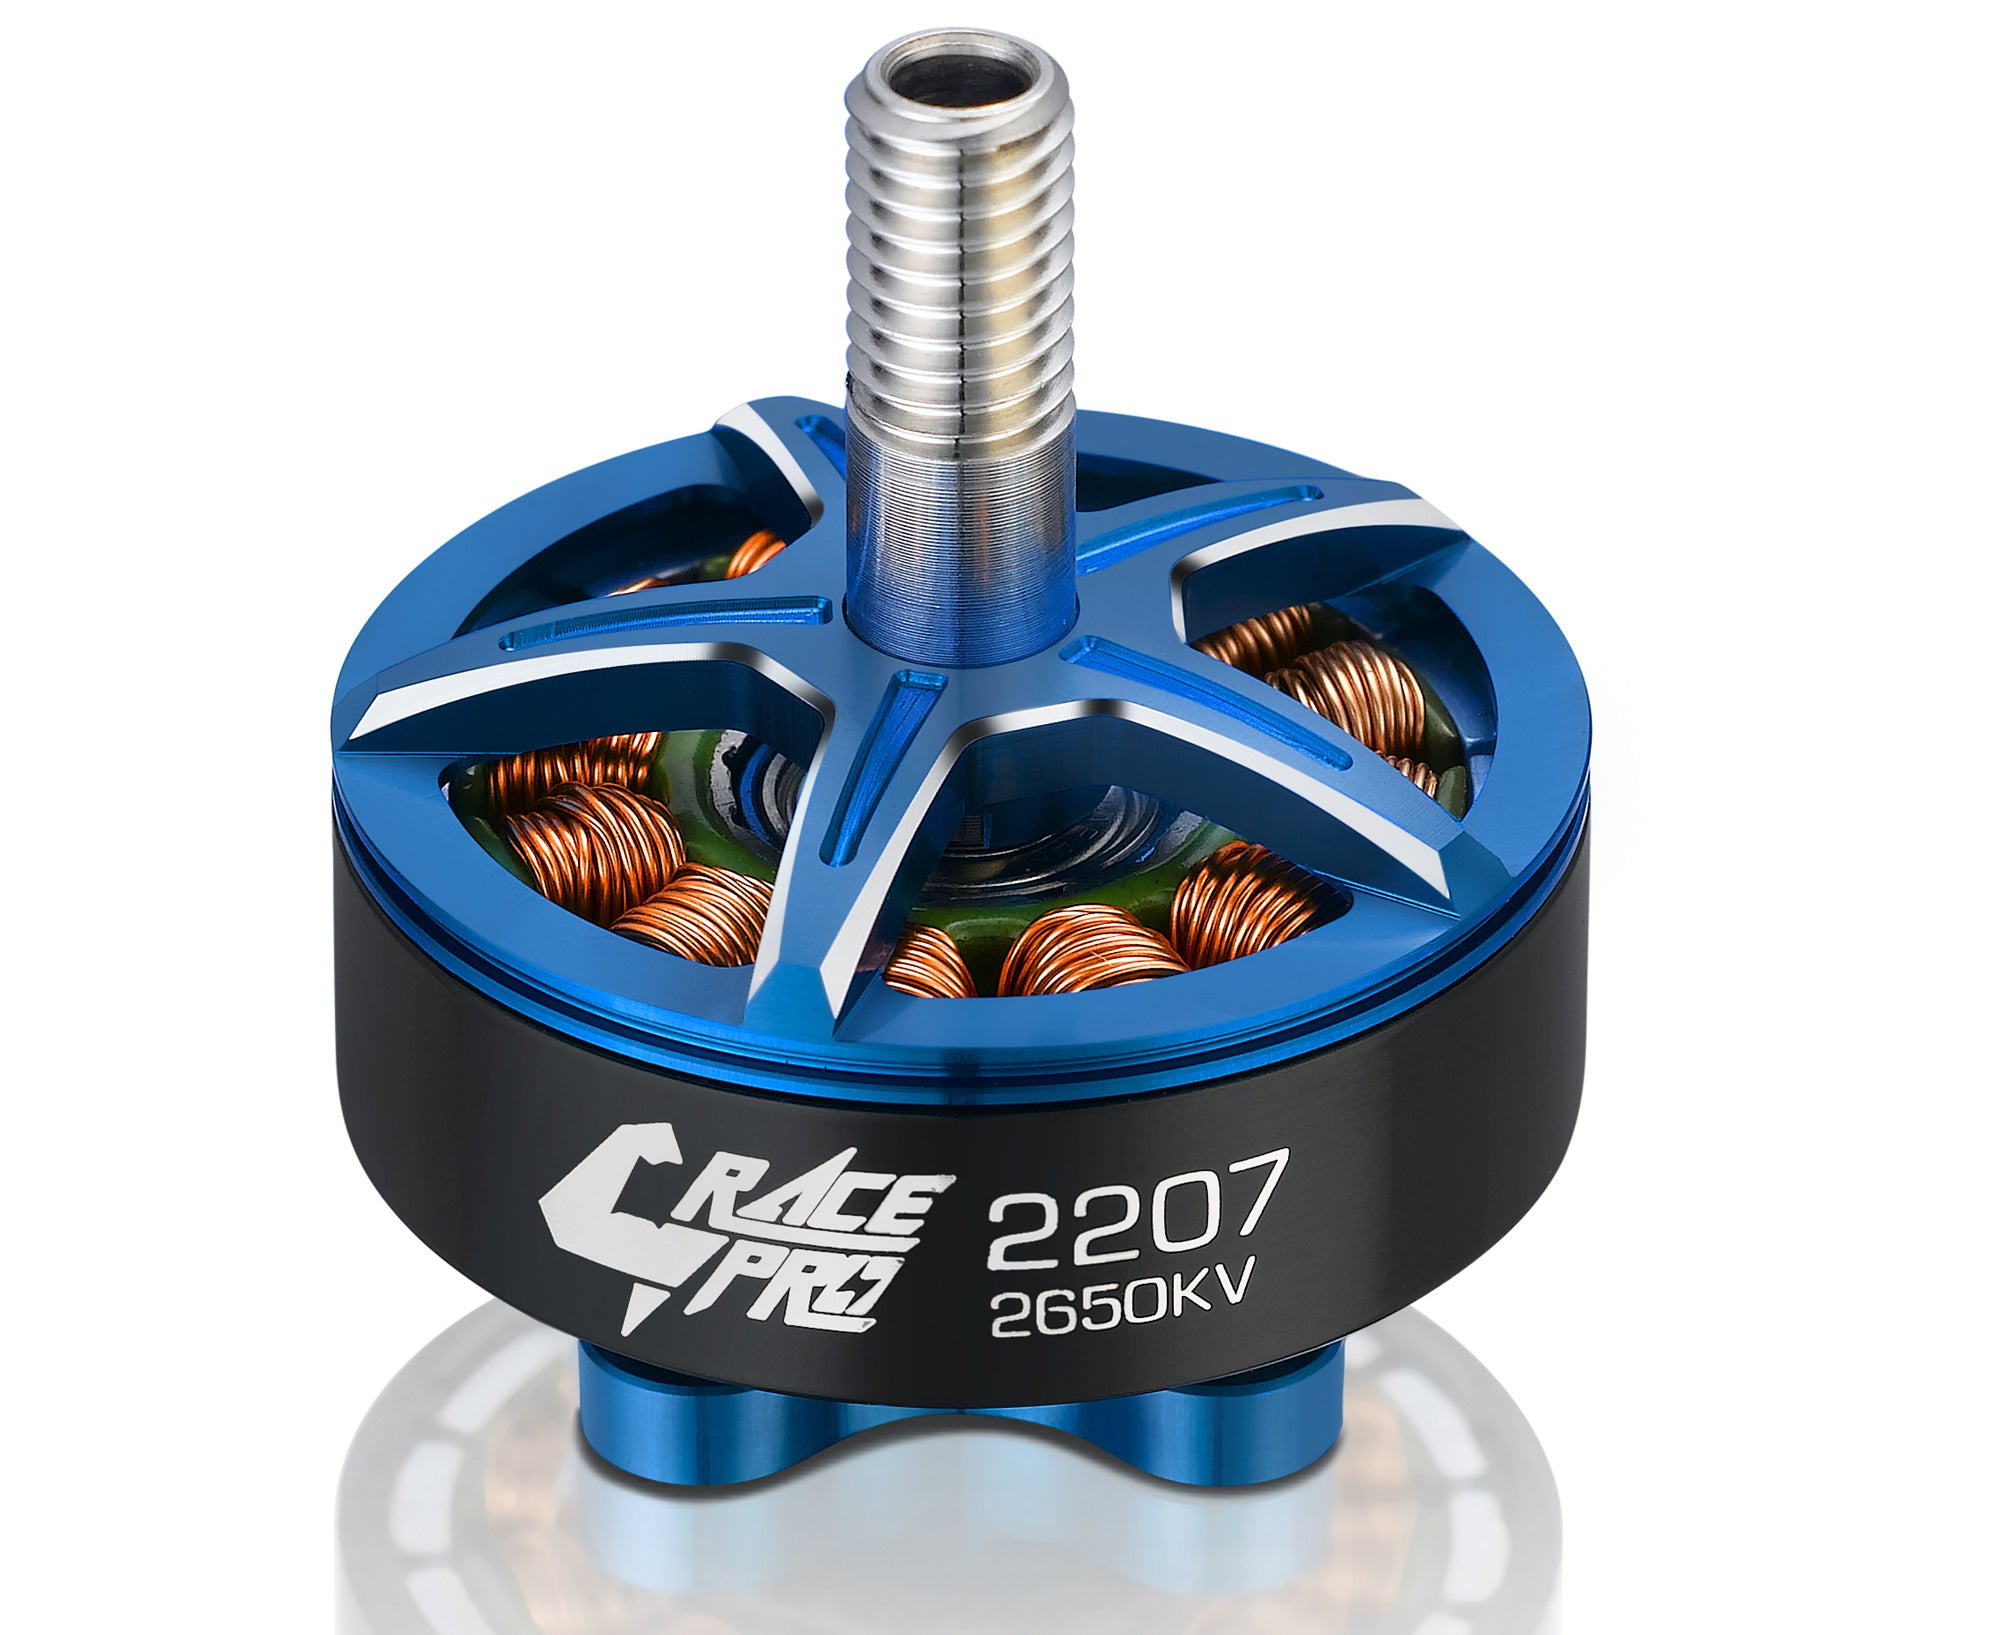 Xrotor 2207 Motor for FPV Drone Racing